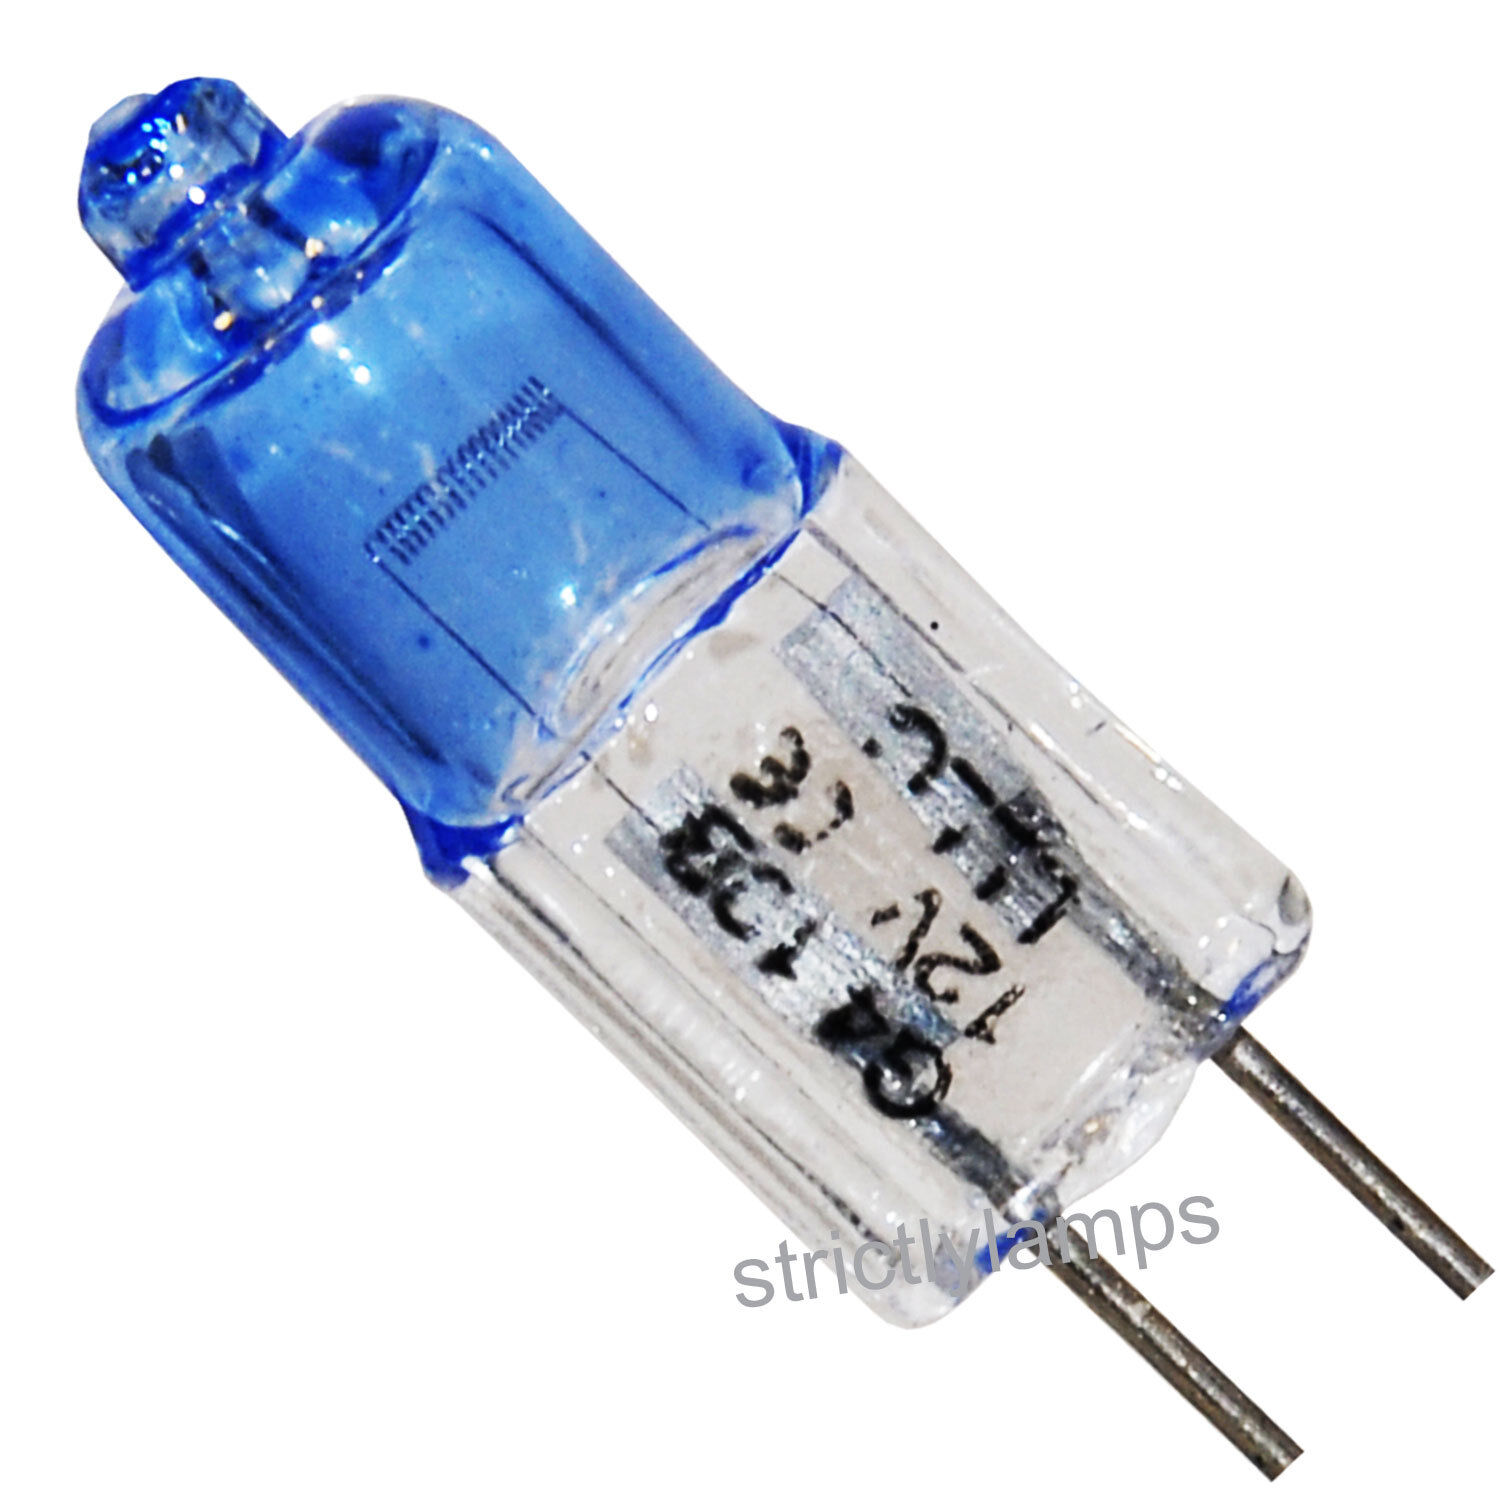 10 x white light g4 12v halogen light bulb capsule 10w blue bulb g4 ebay. Black Bedroom Furniture Sets. Home Design Ideas